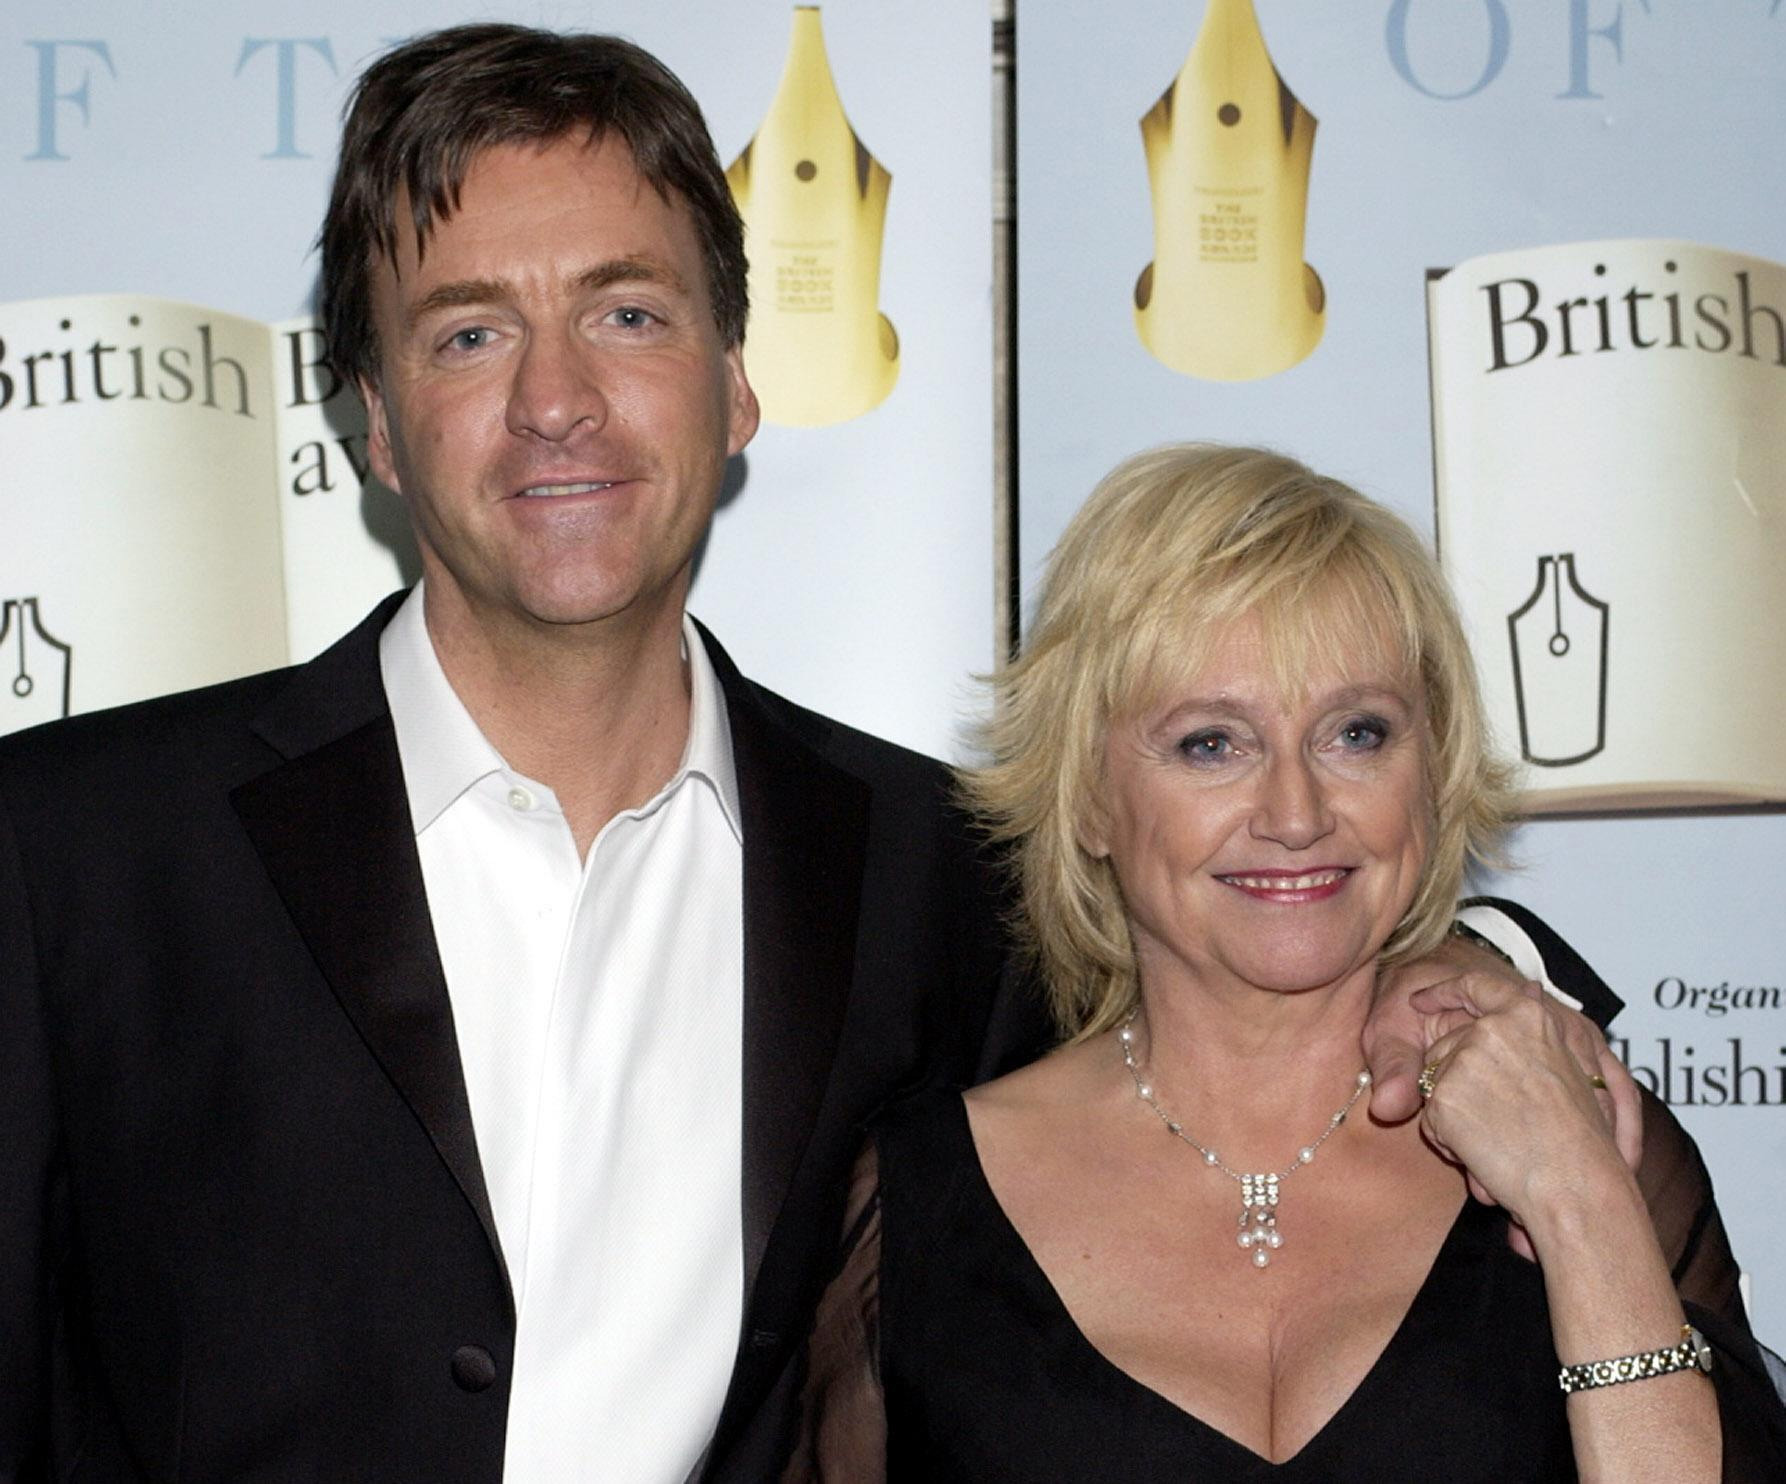 Richard and Judy to move to UKTV